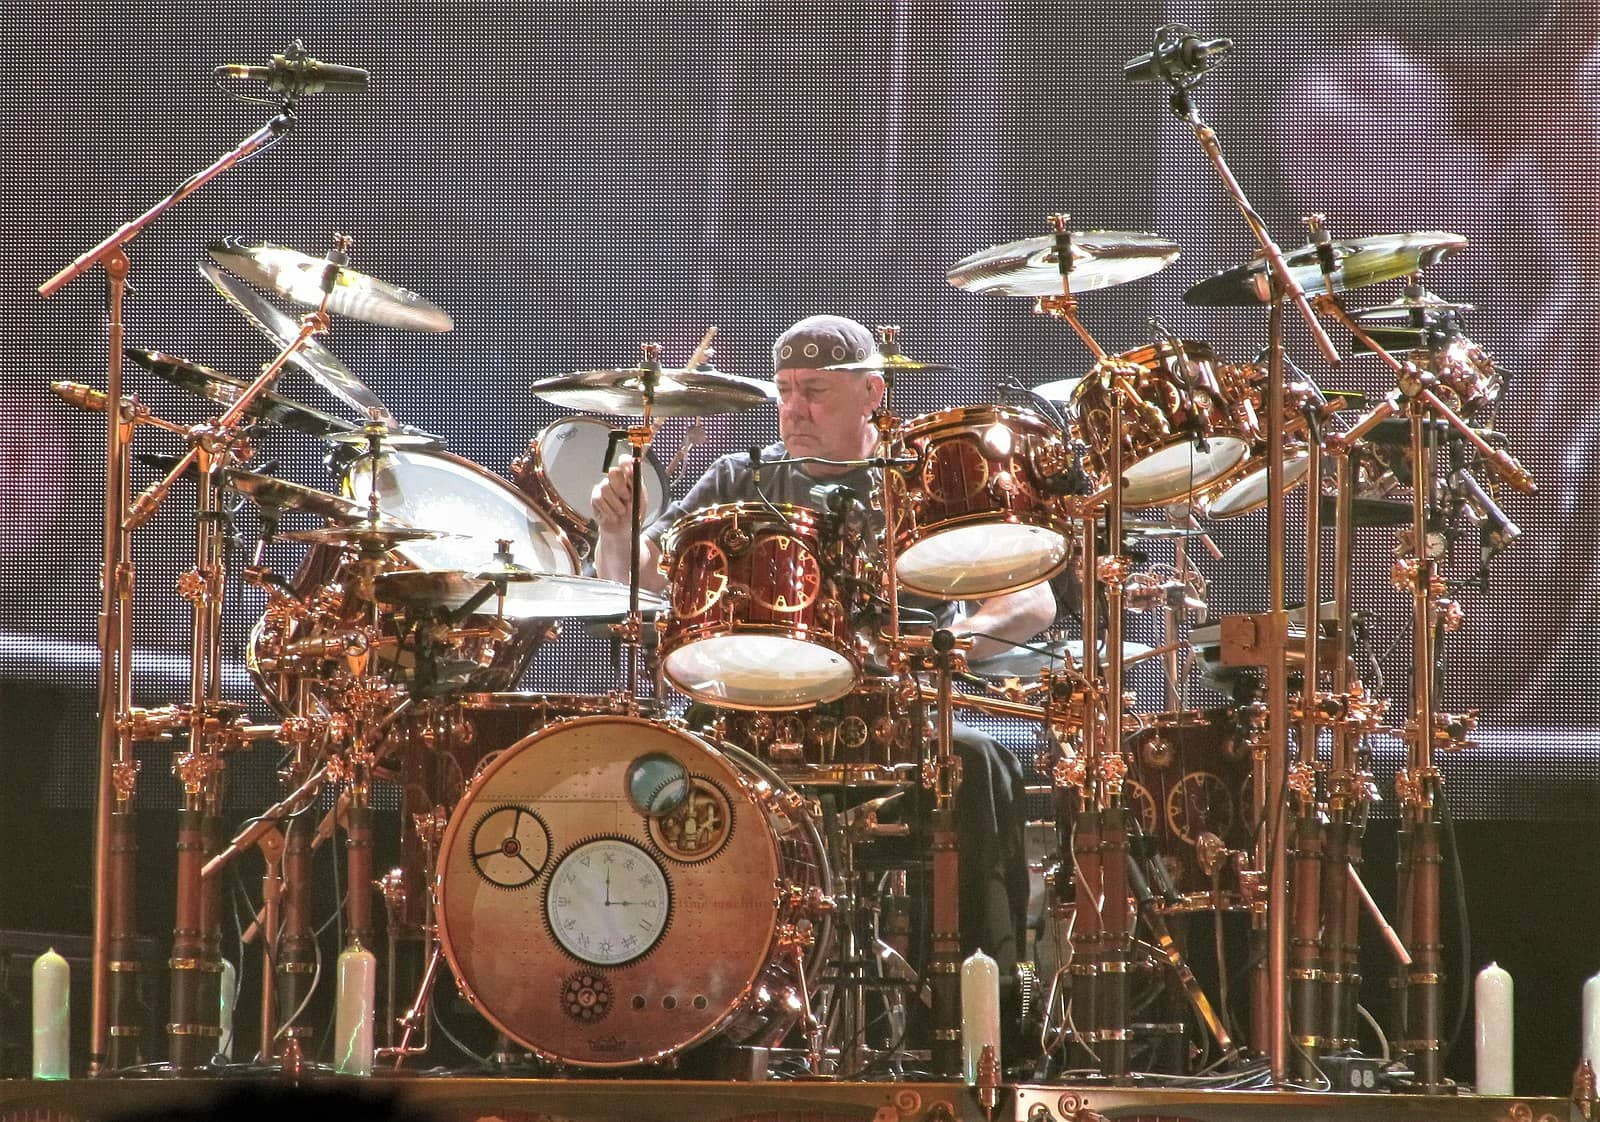 A Farewell To Kings 40th Anniversary Deluxe Edition by Rush - 5.1 Surround Sound (1)